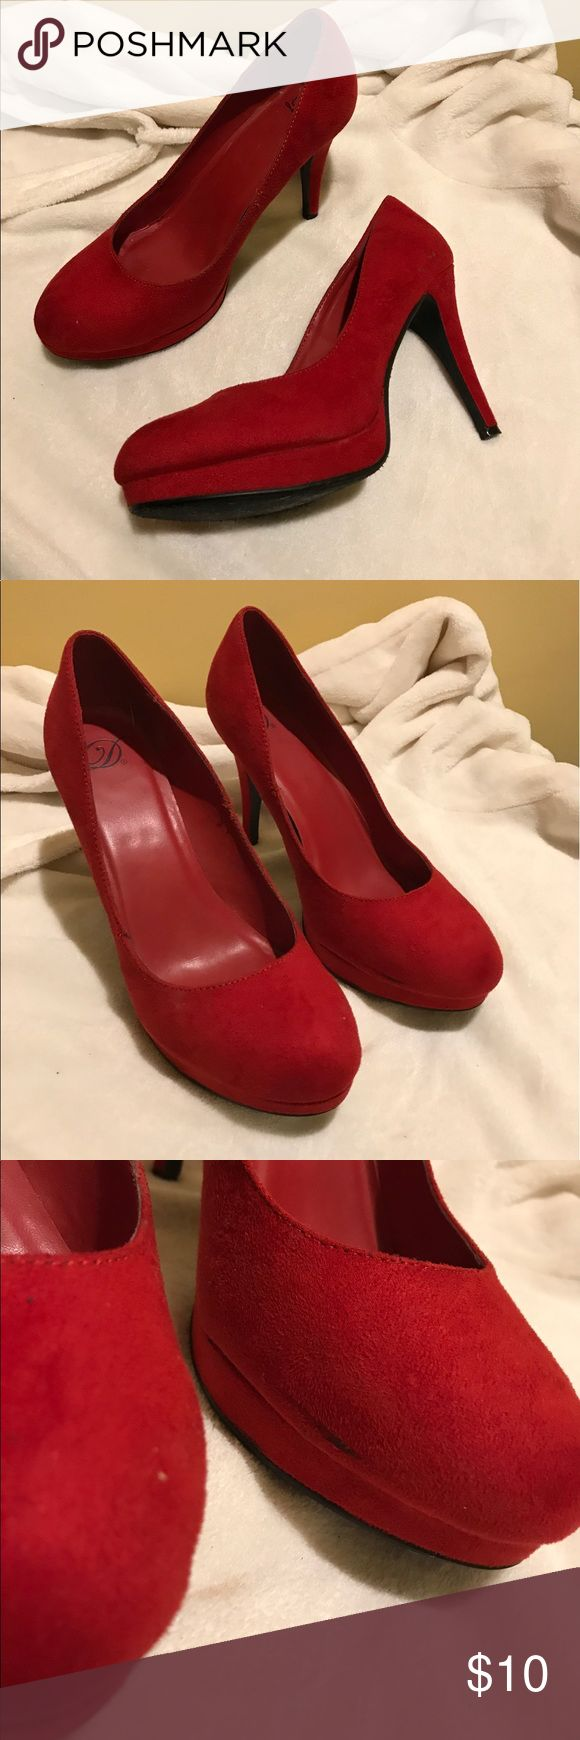 Red Platform Heels Size 10 Worn, but in good condition other than a small black scuff that is shown in pictures. Size 10 red Platform Heels. Shoes Heels